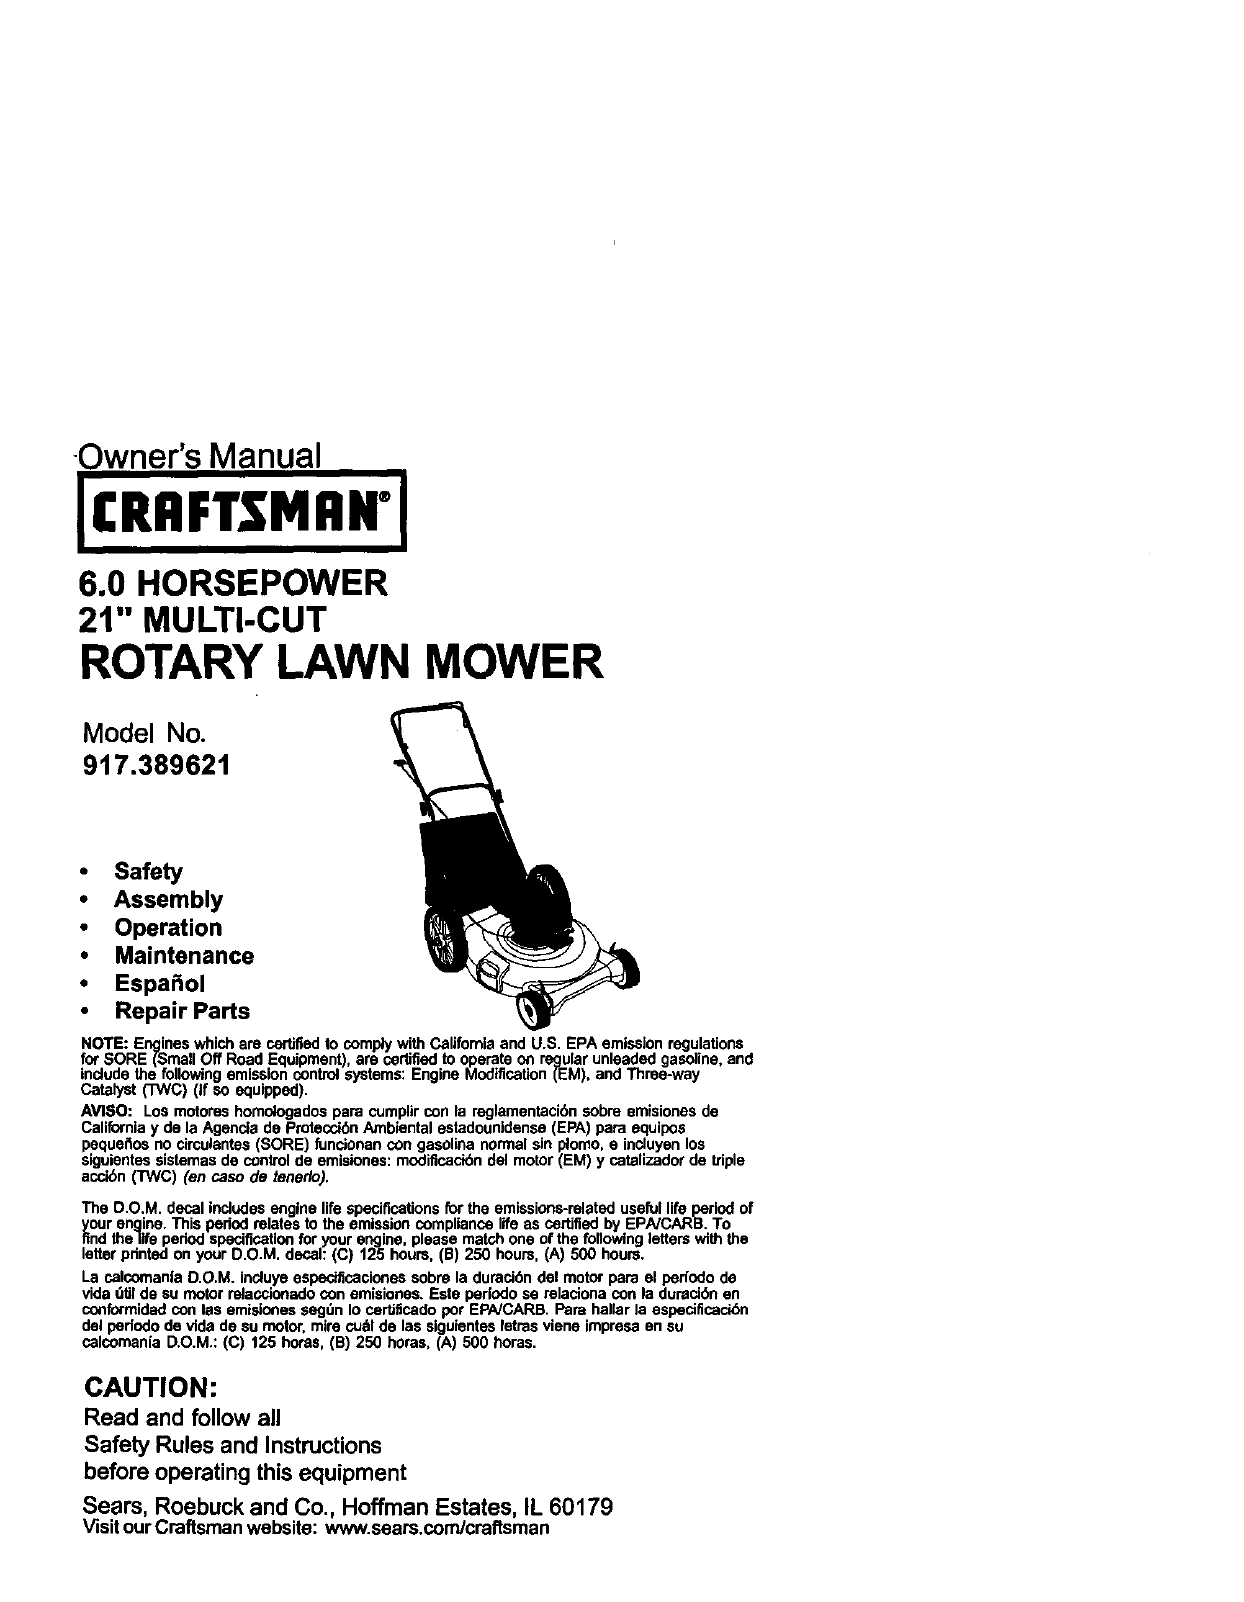 Craftsman 917389621 User Manual Gas Walk Behind Lawnmower Manuals Parts Diagram And List For Walkbehindlawnmower Guides L0103273